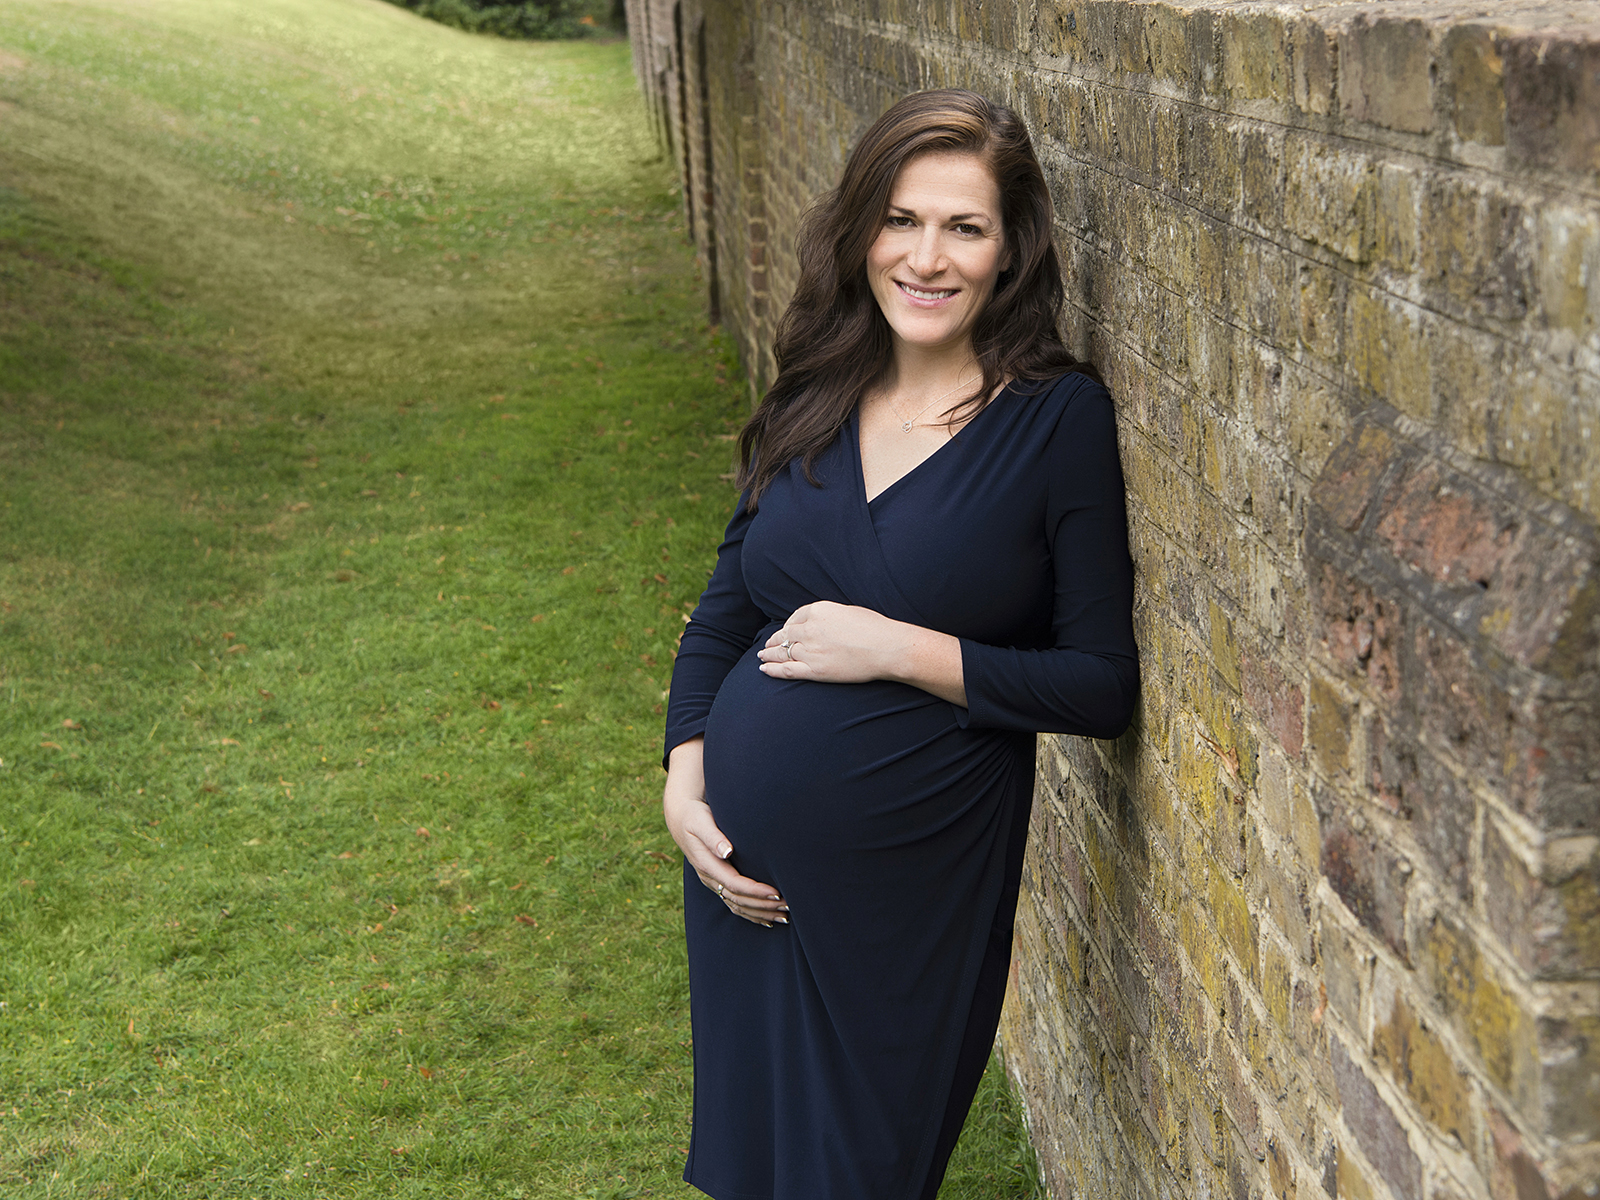 A relaxed maternity portrait shot on an outdoor location at Chiswick House.